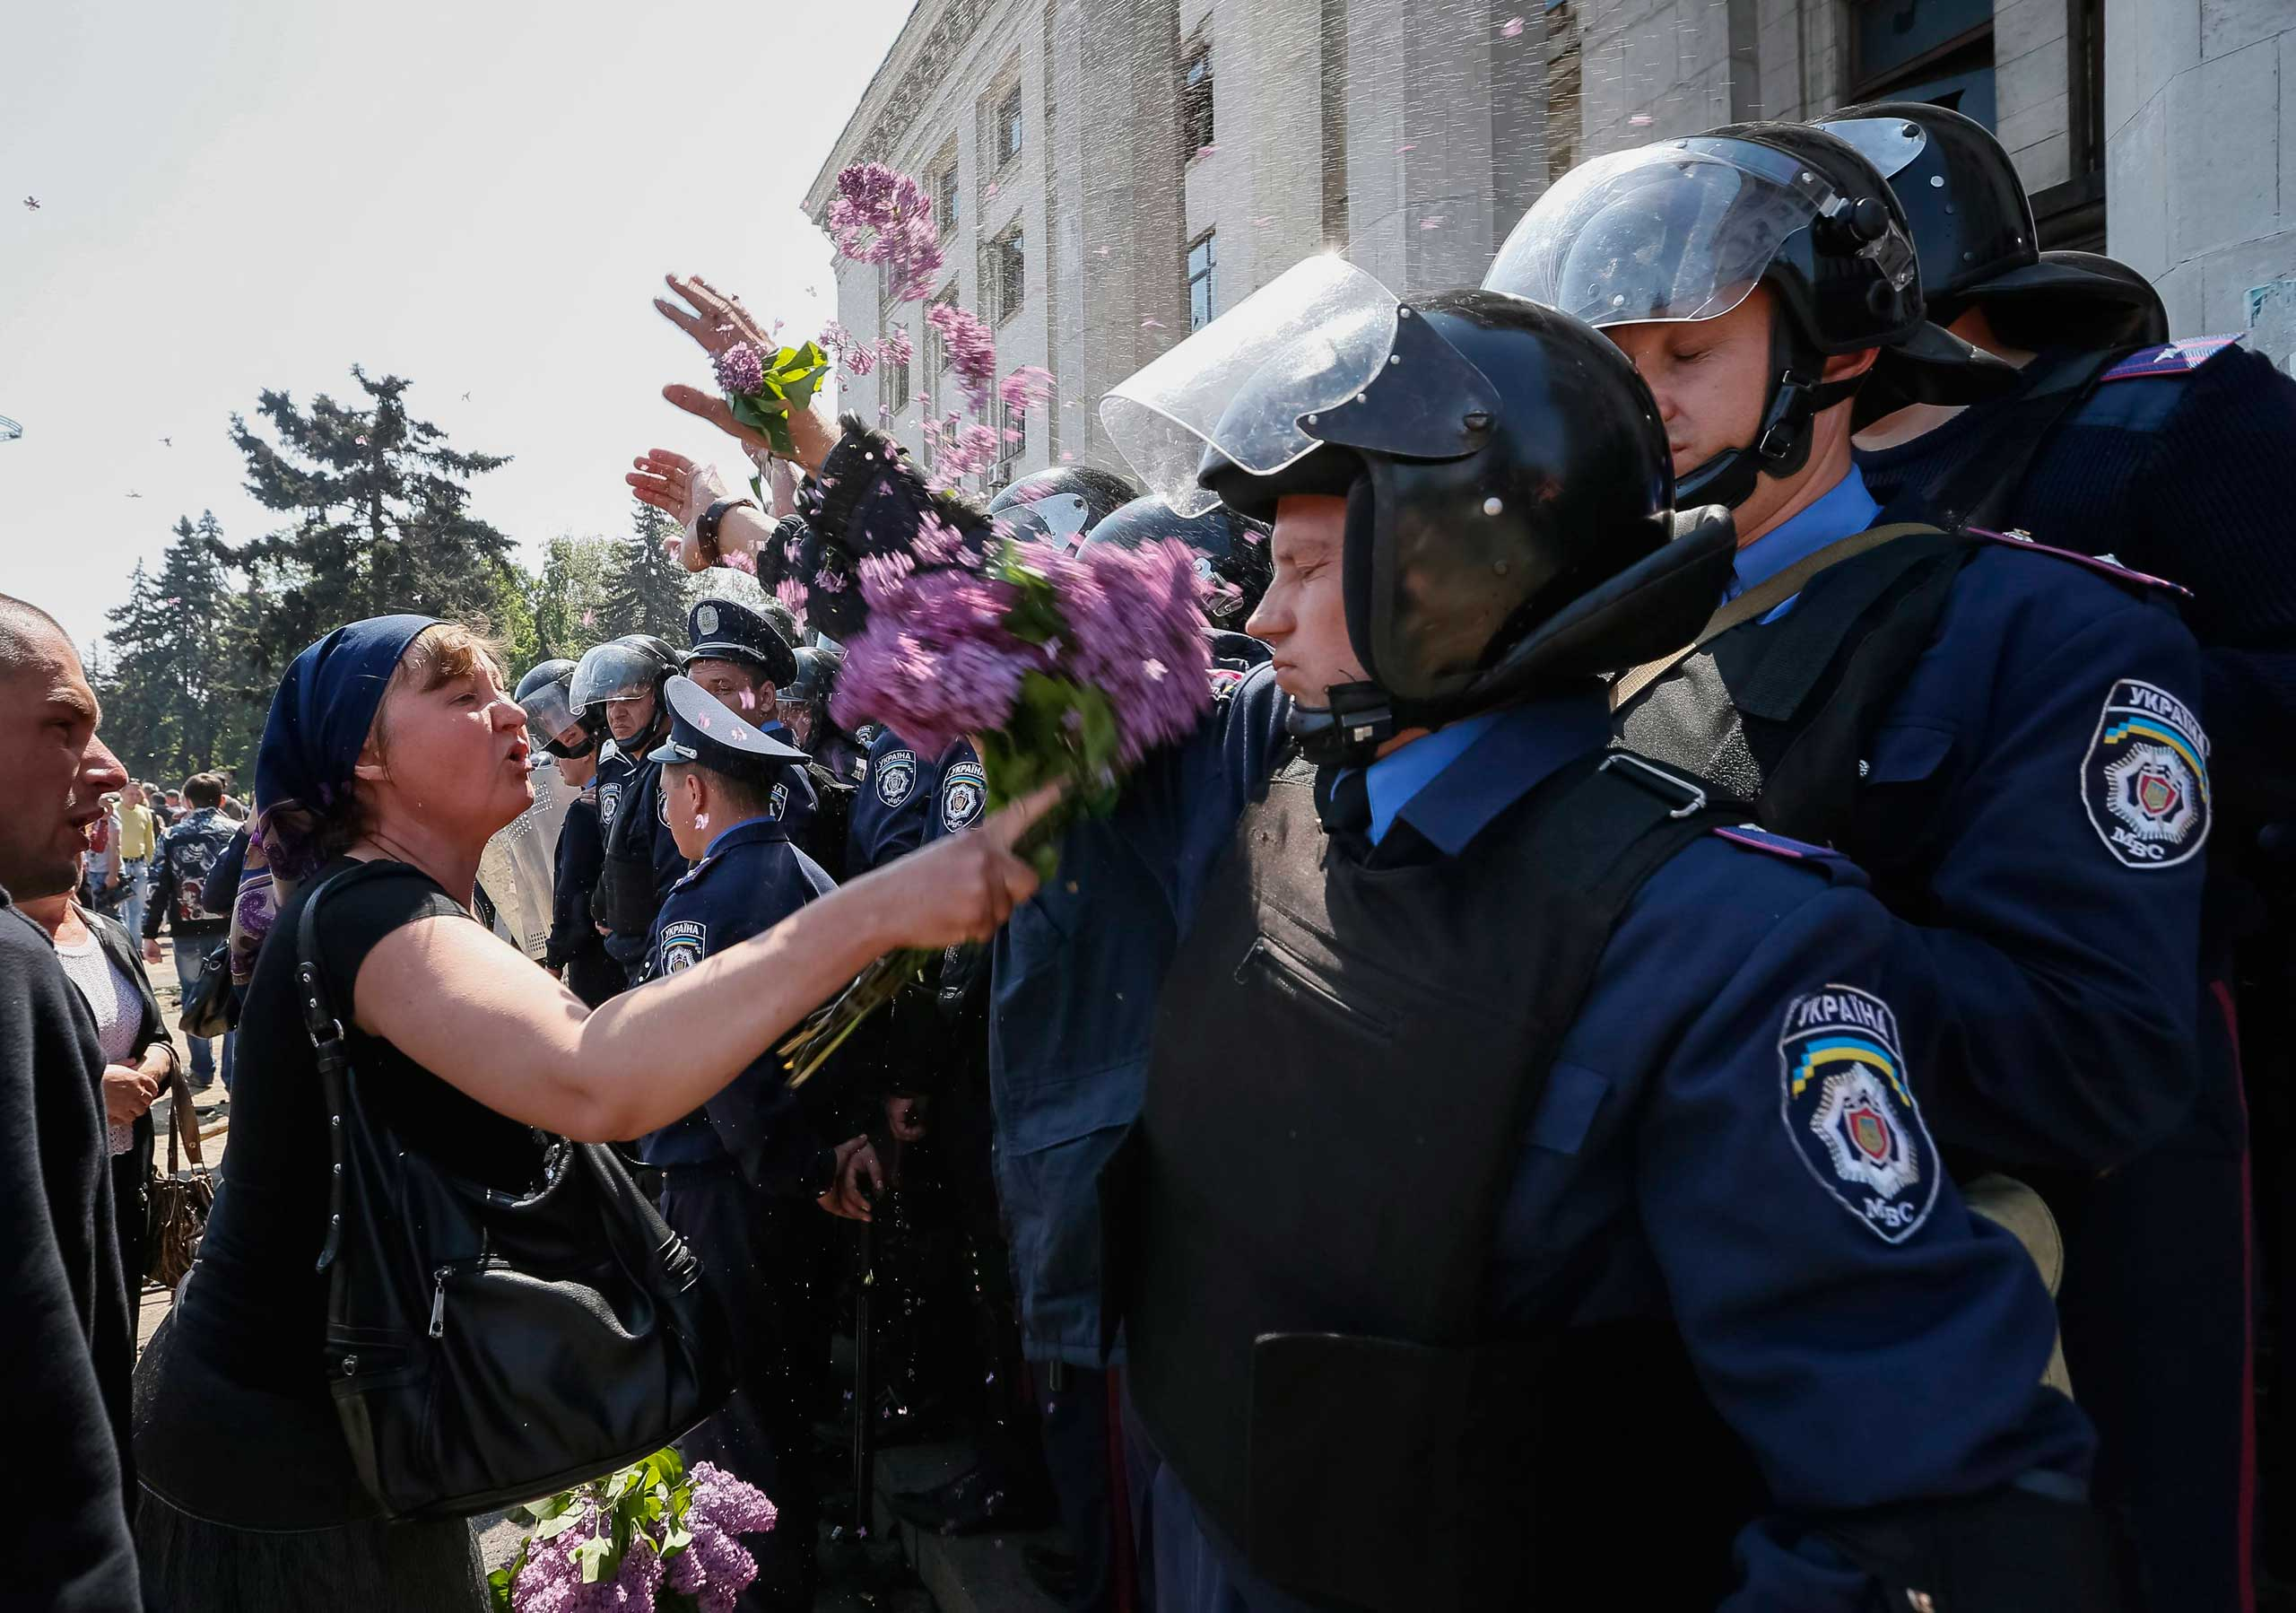 A woman argues with members from the Ukrainian Interior Ministry security forces during a rally outside a trade union building Odessa, May 3, 2014.